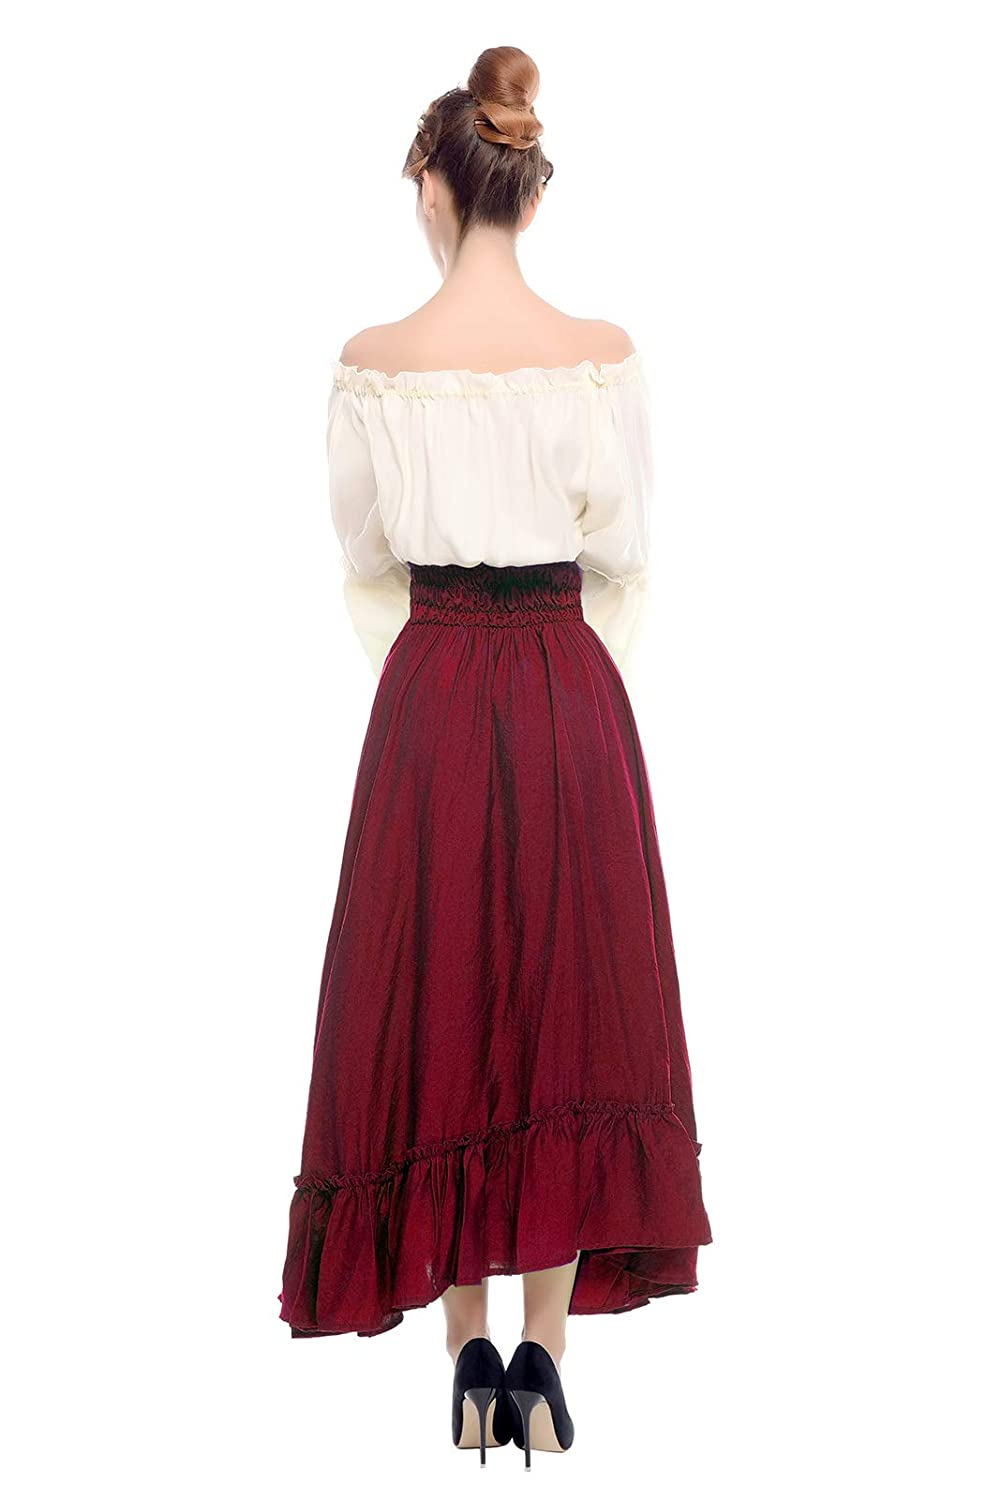 7bad42b942 Amazon.com  ROLECOS Renaissance Medieval Dress Victorian Peasant Retro Gown  Shirt and Skirt  Clothing